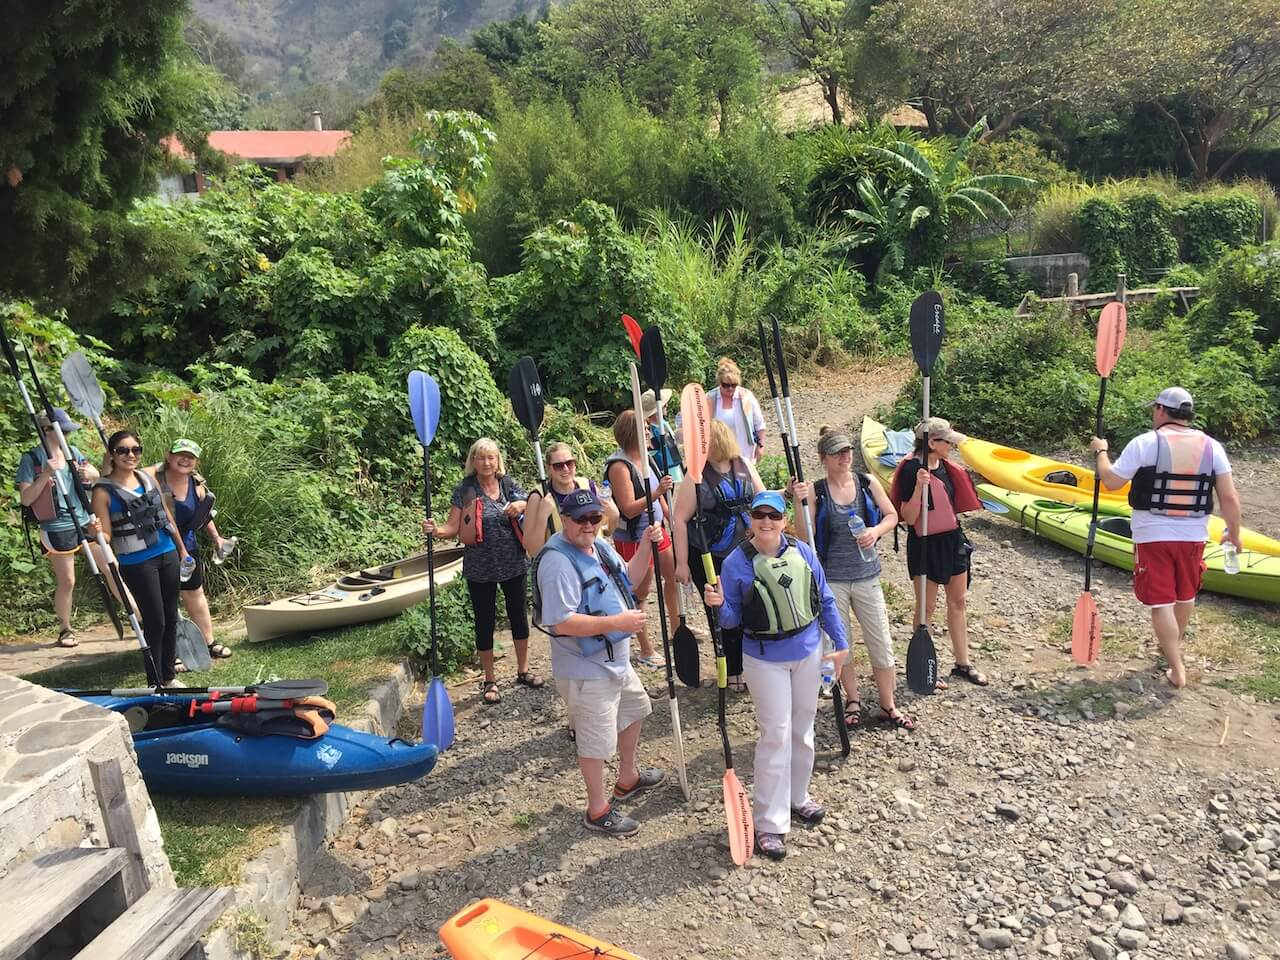 Antigua family activities - Lake Atitlan Family Fun Day